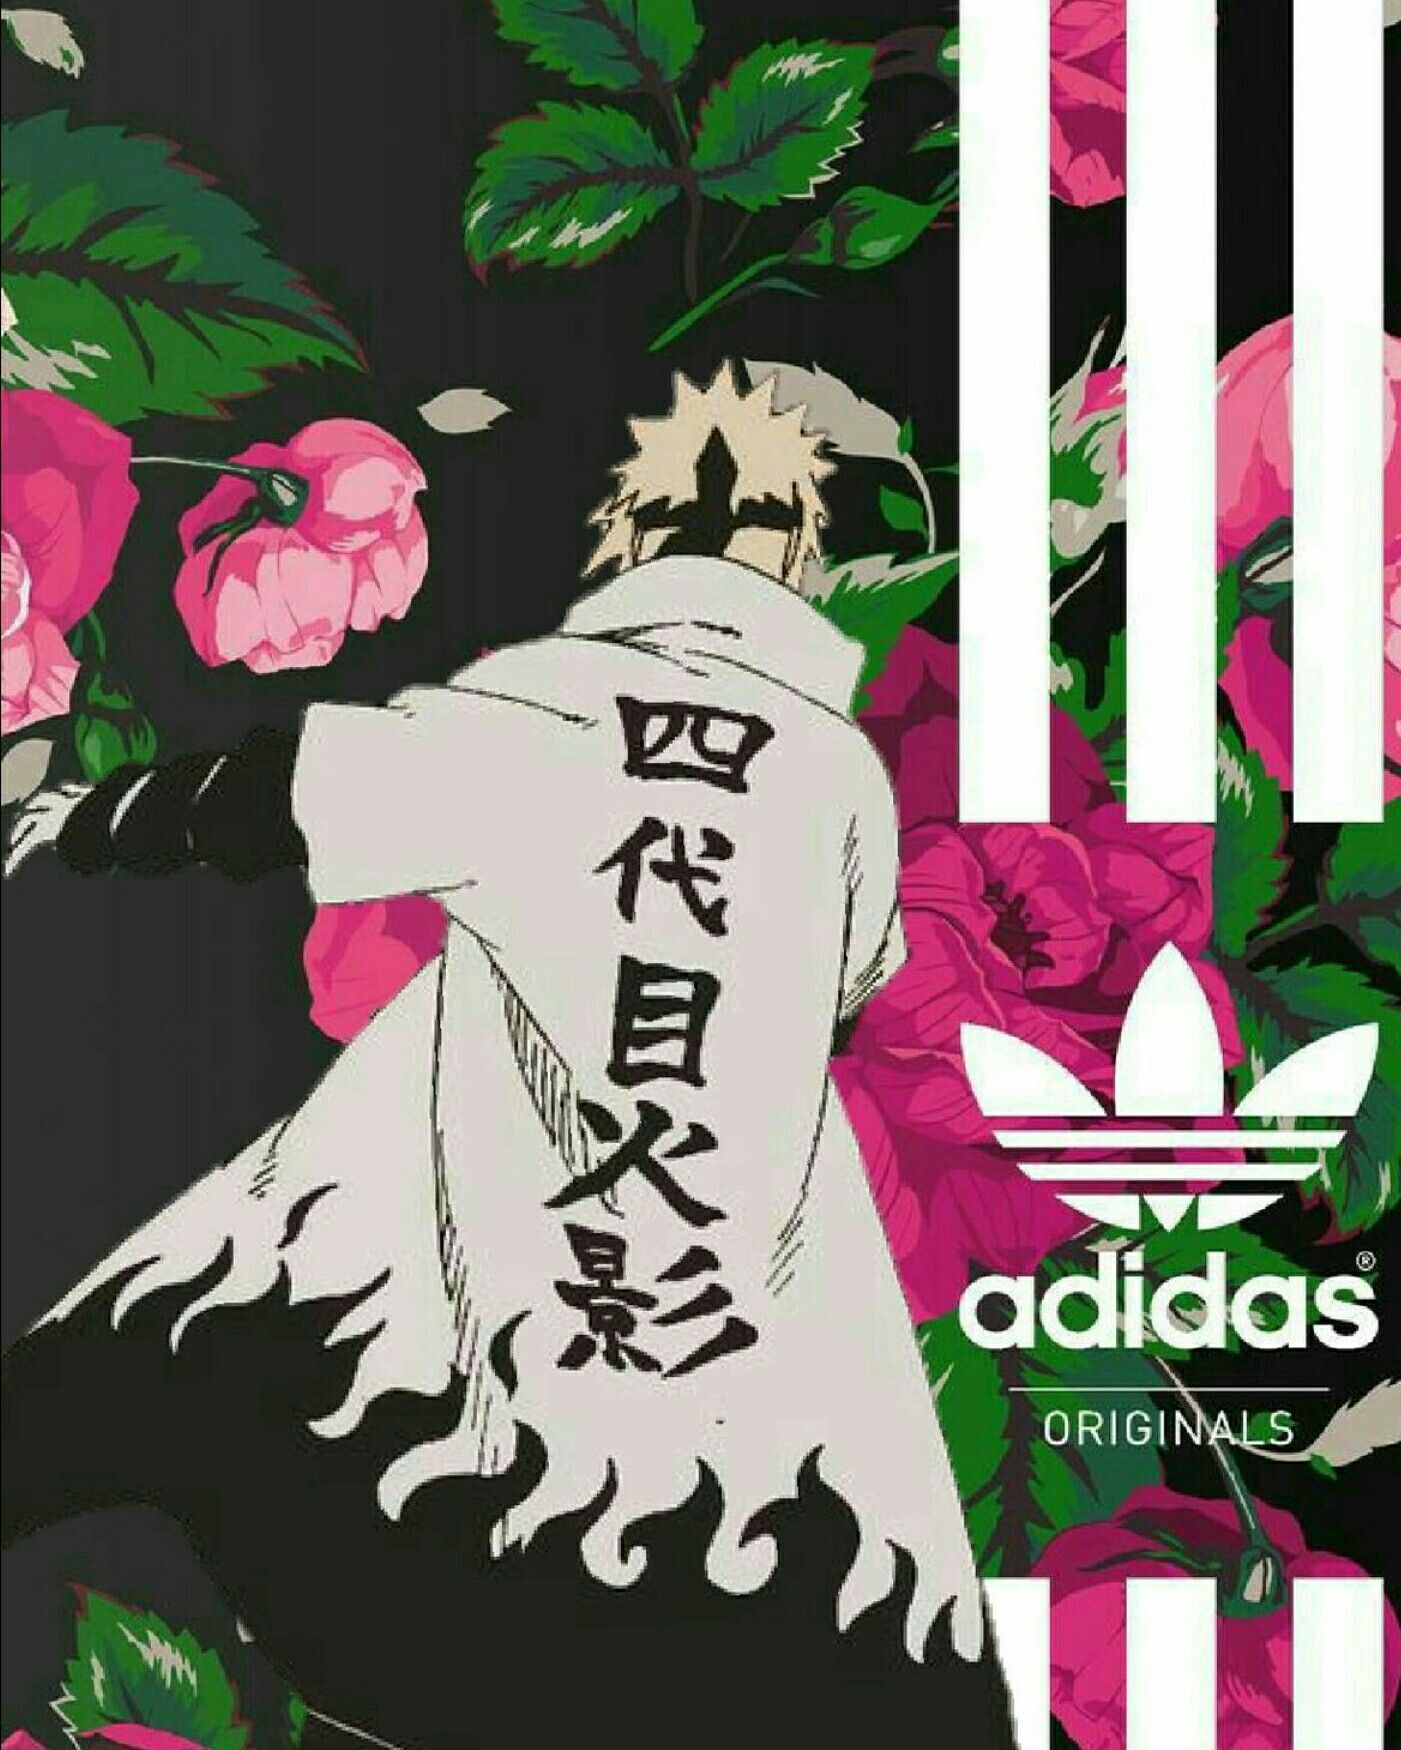 Adidas Minato With Images Bape Wallpapers Hypebeast Wallpaper